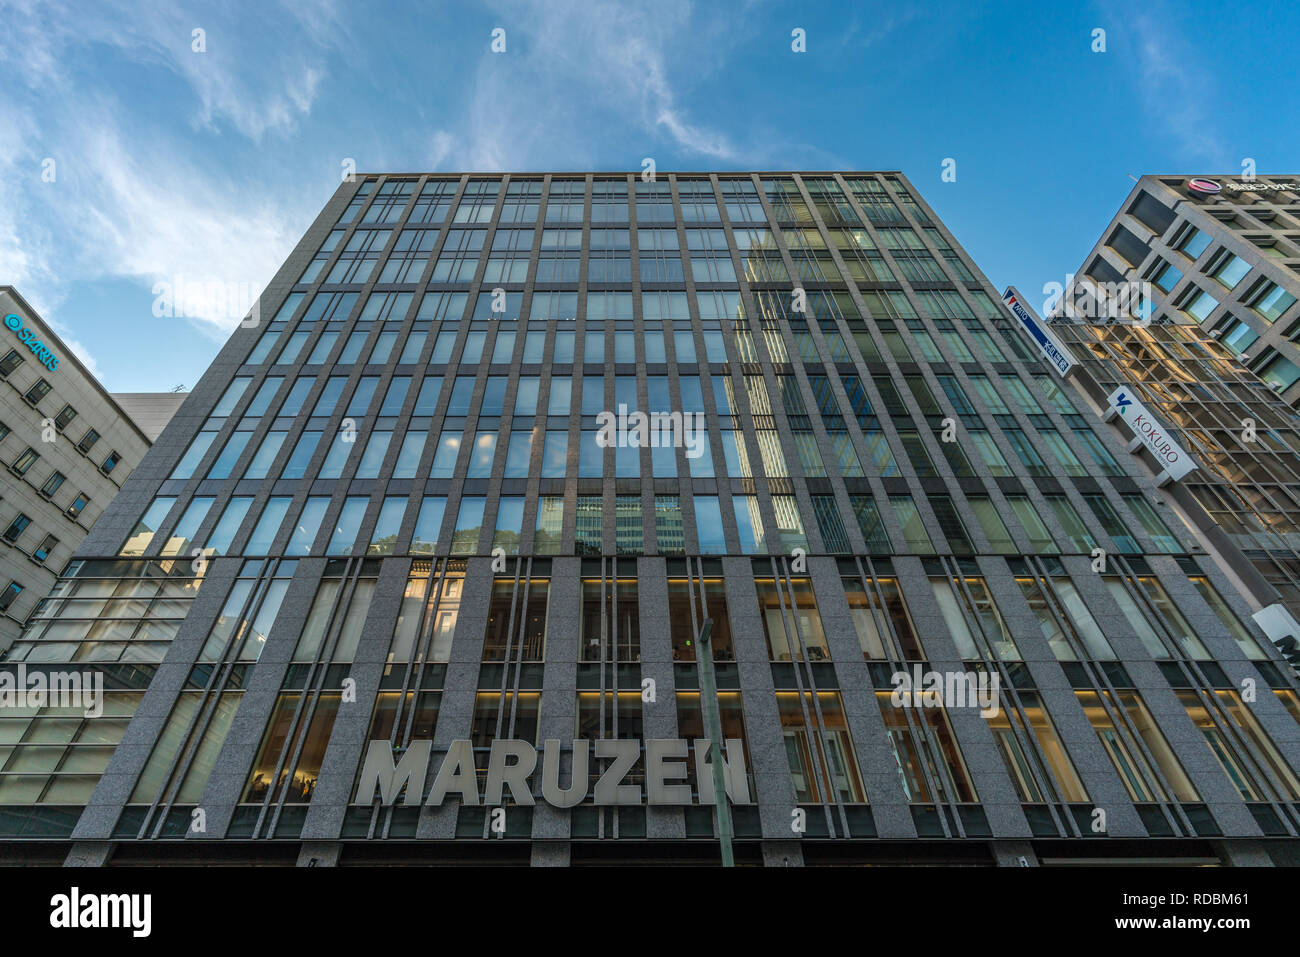 Tokyo, Chuo Ward - August 26, 2018 : Maruzen Nihonbashi Bookstore building, one of Japan's largest bookstores - Stock Image